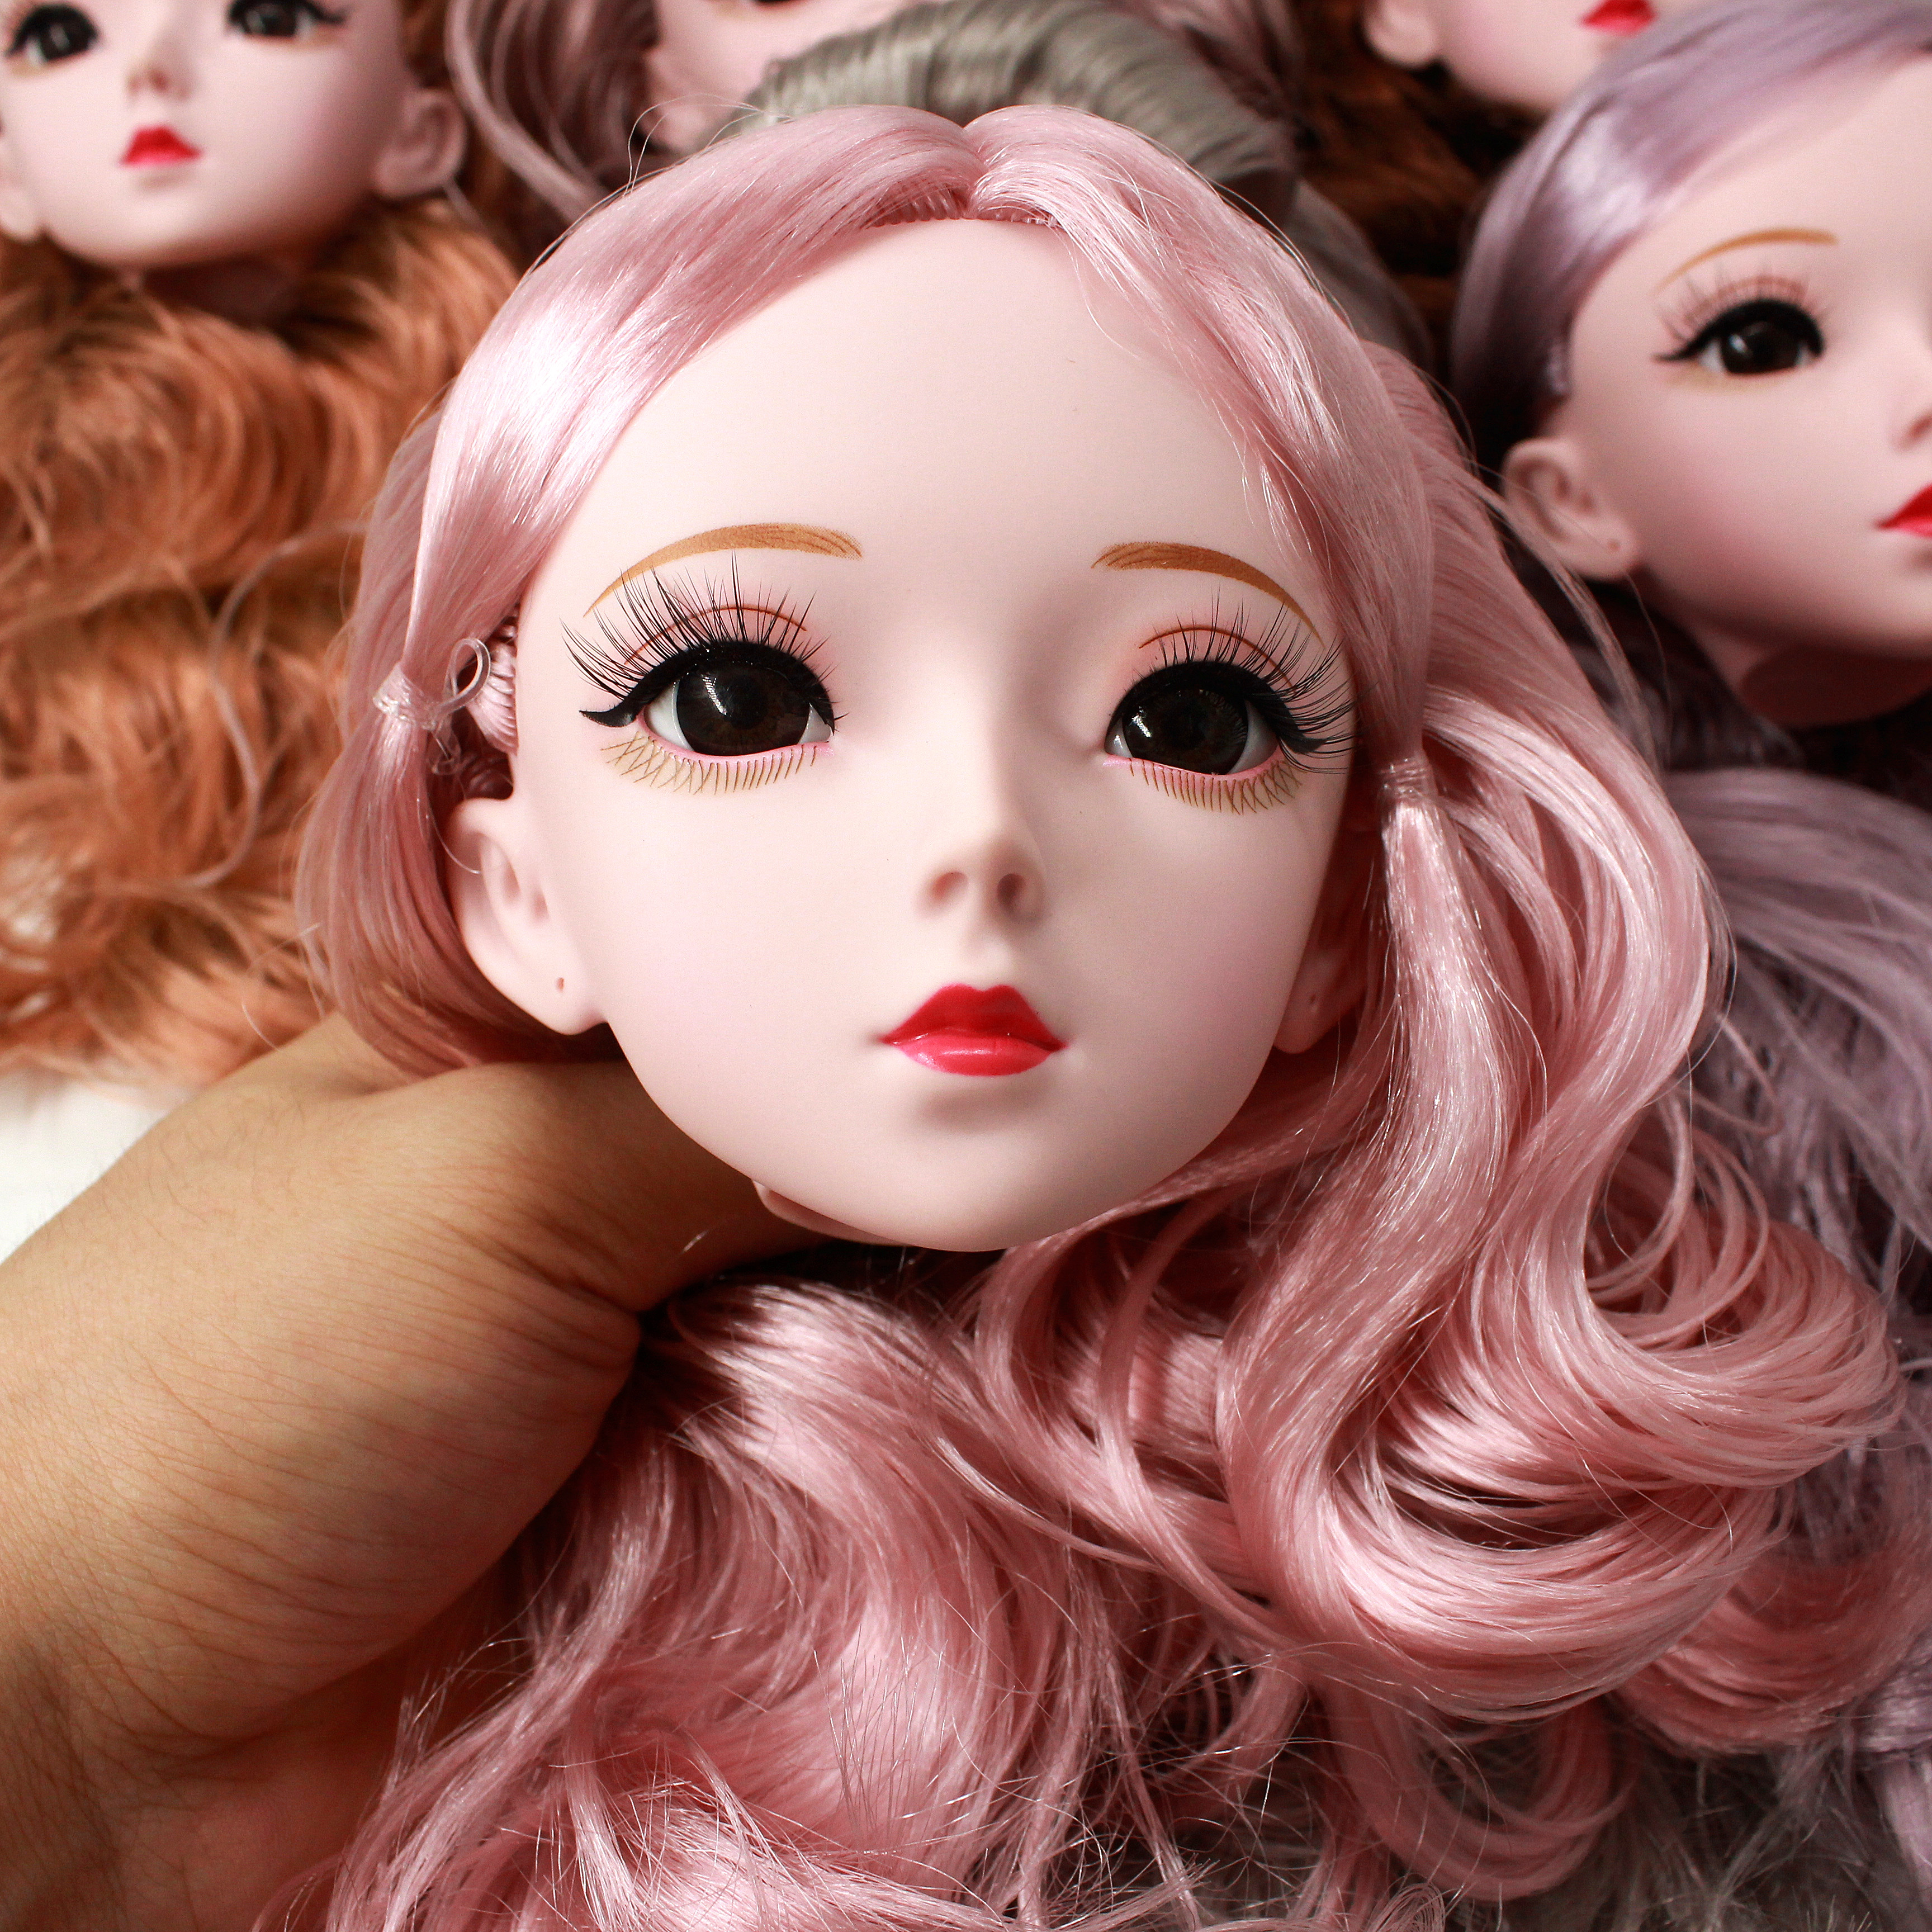 22joints Black Eyes 60cm Bjd Doll With Clothes Nude Body With Makeup Dolls For Girls Gift